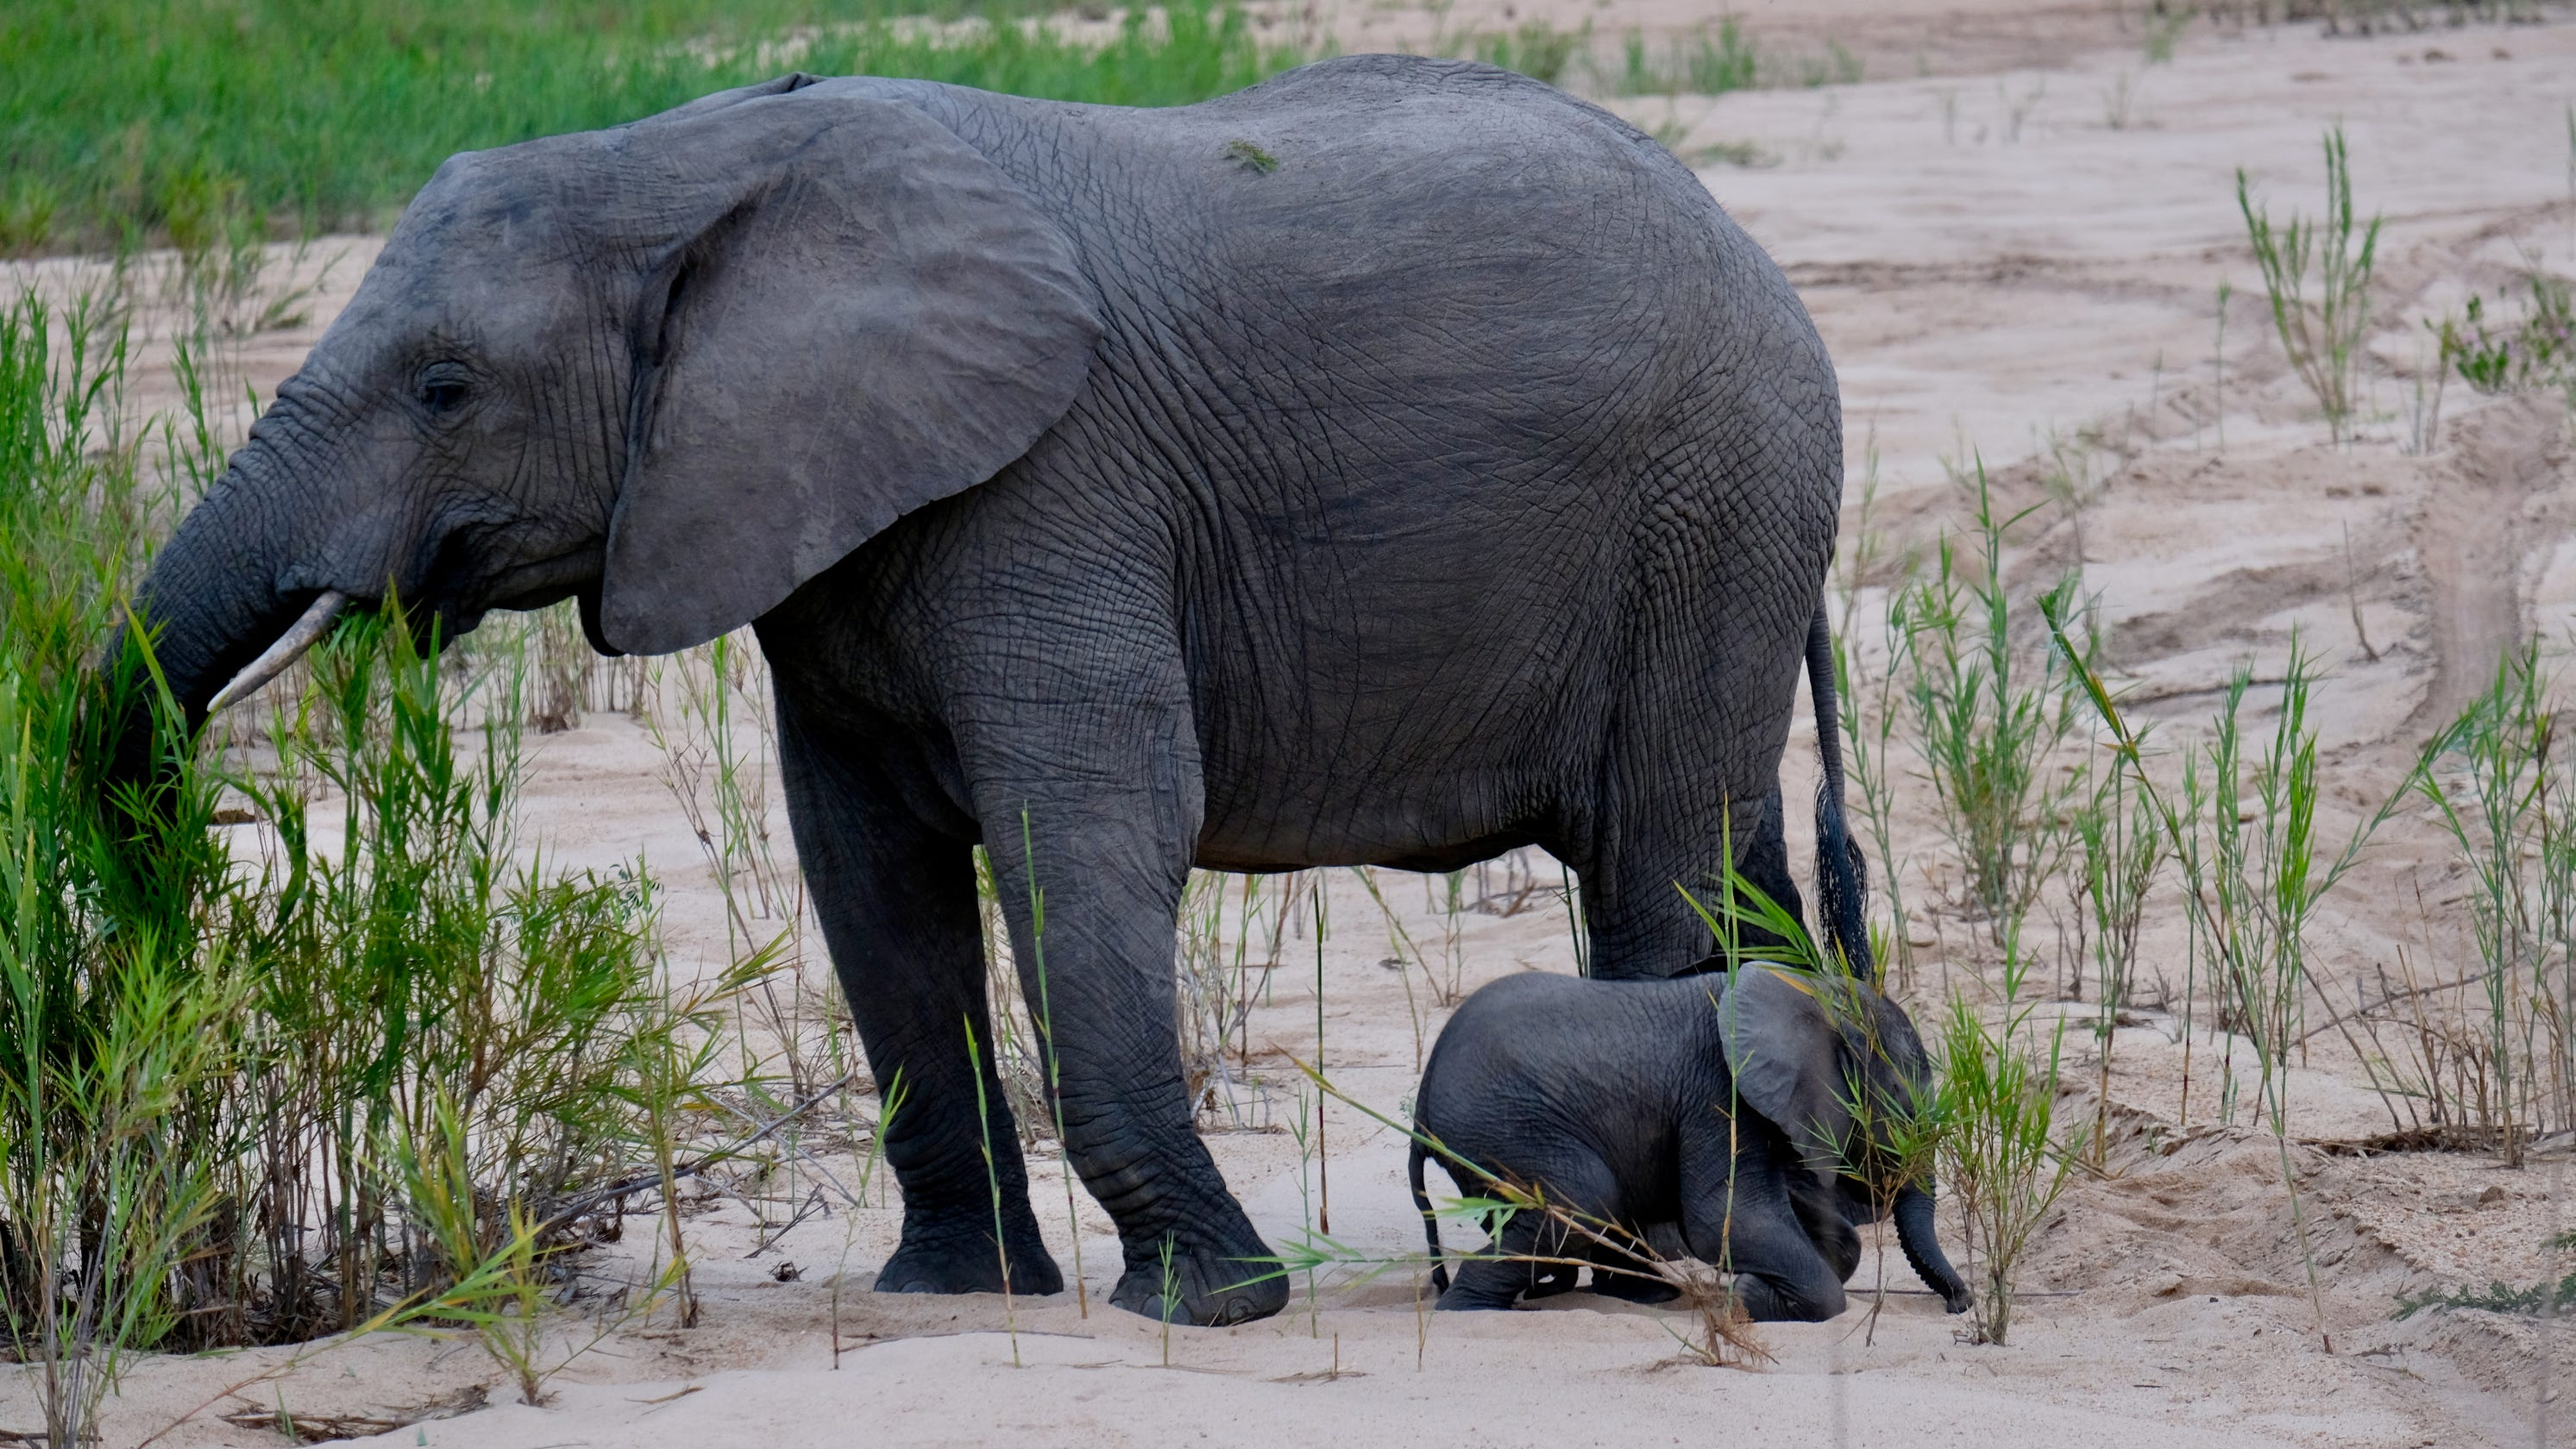 Elephants trample suspected poacher in South African park; second poacher injured and missing